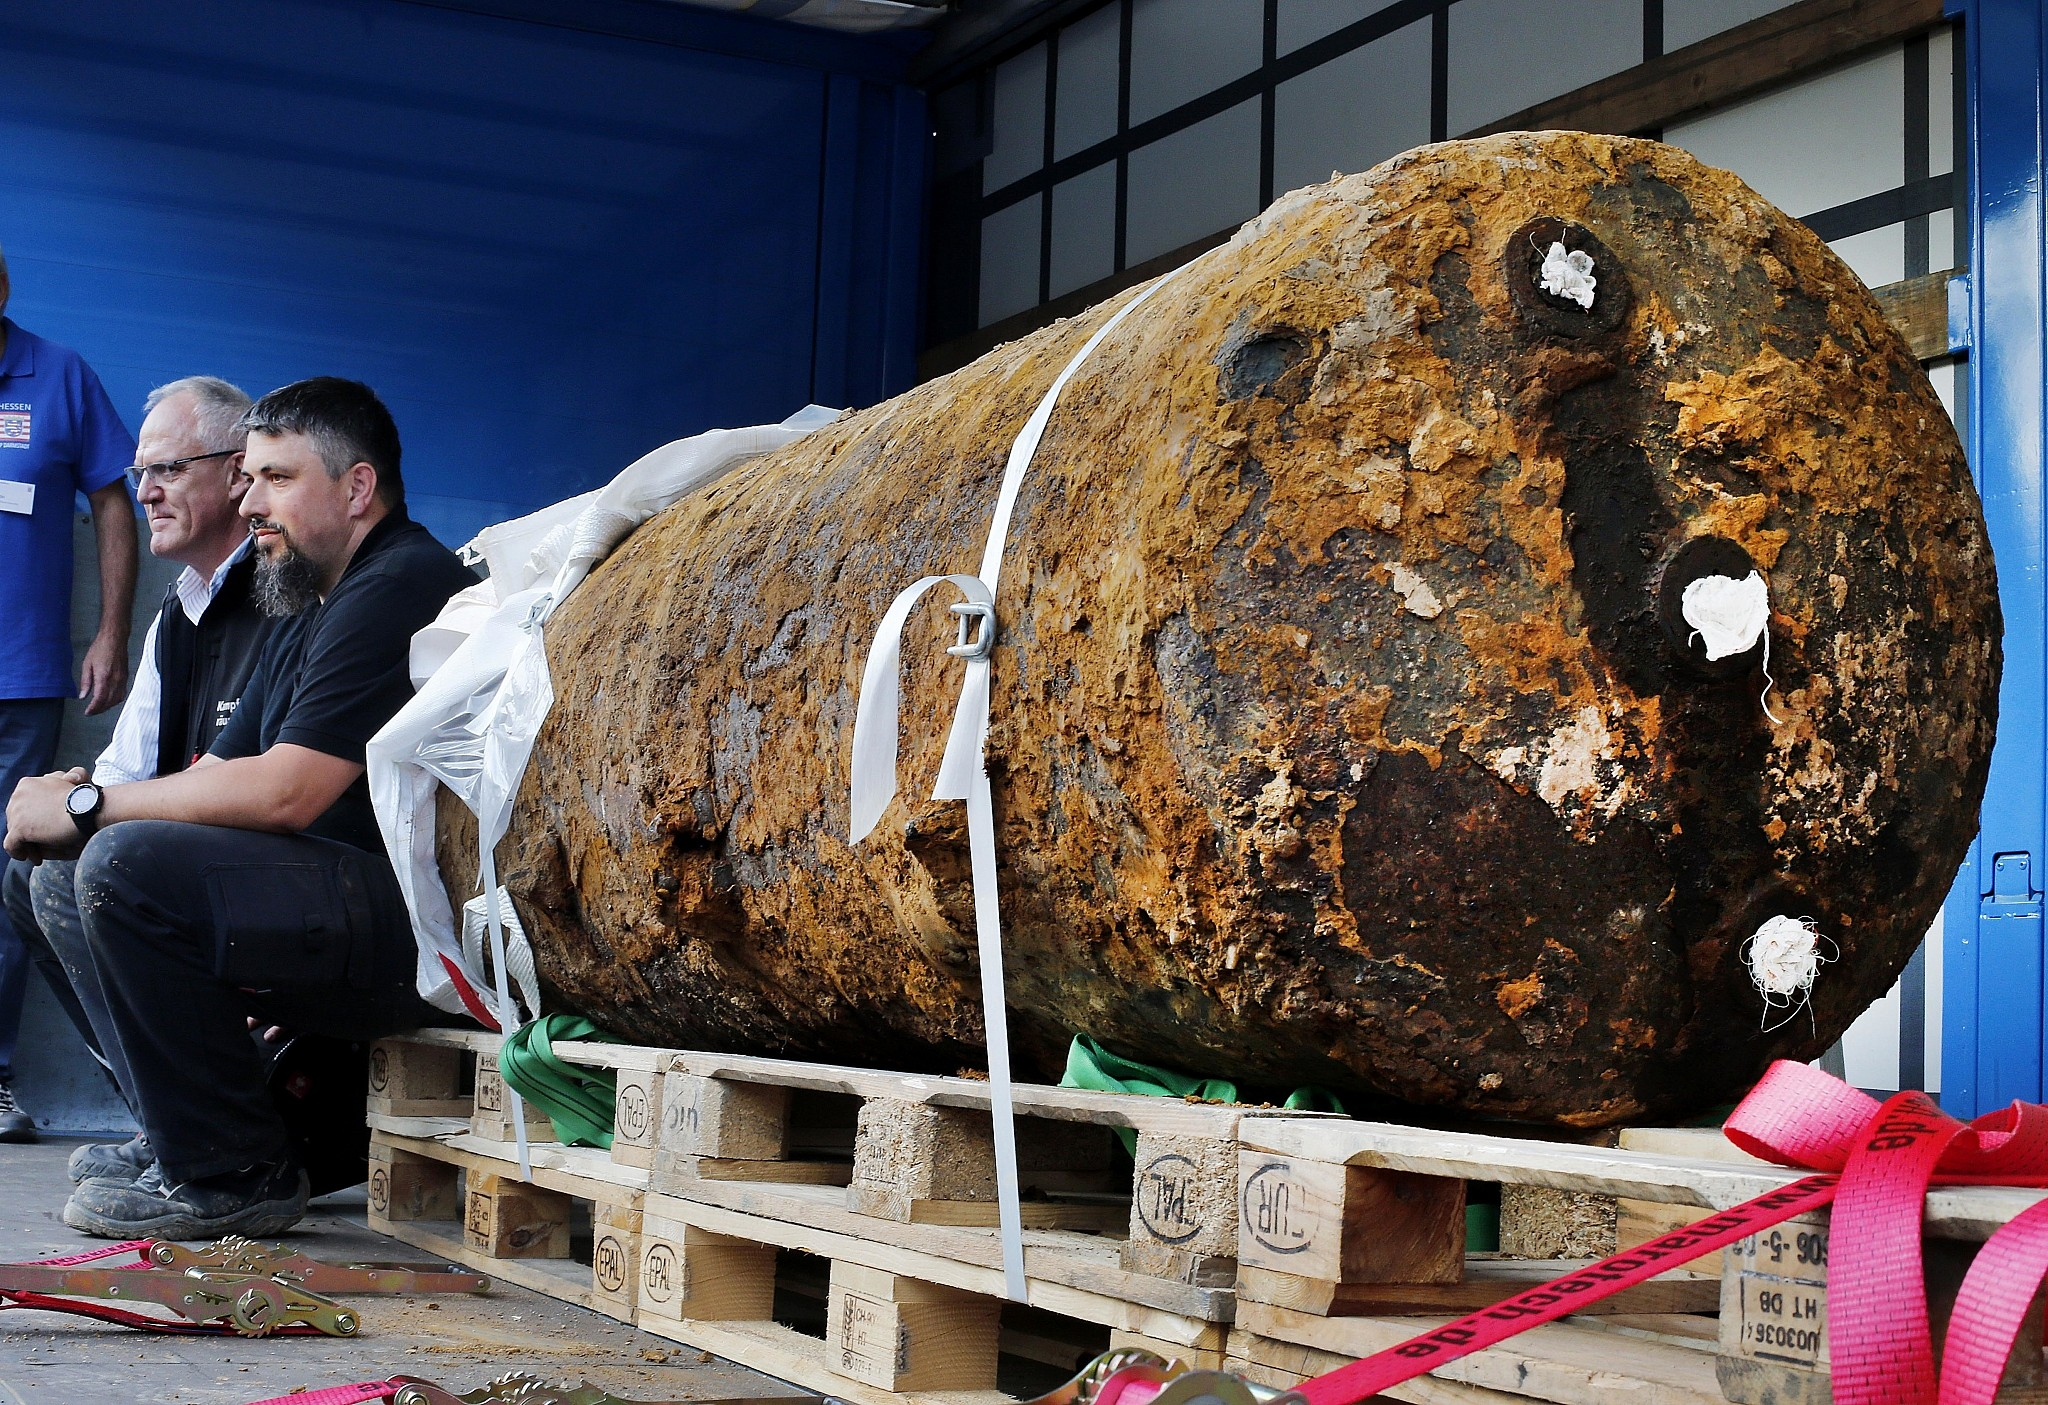 Two major German cities evacuate over 60000 people to defuse WWII bombs